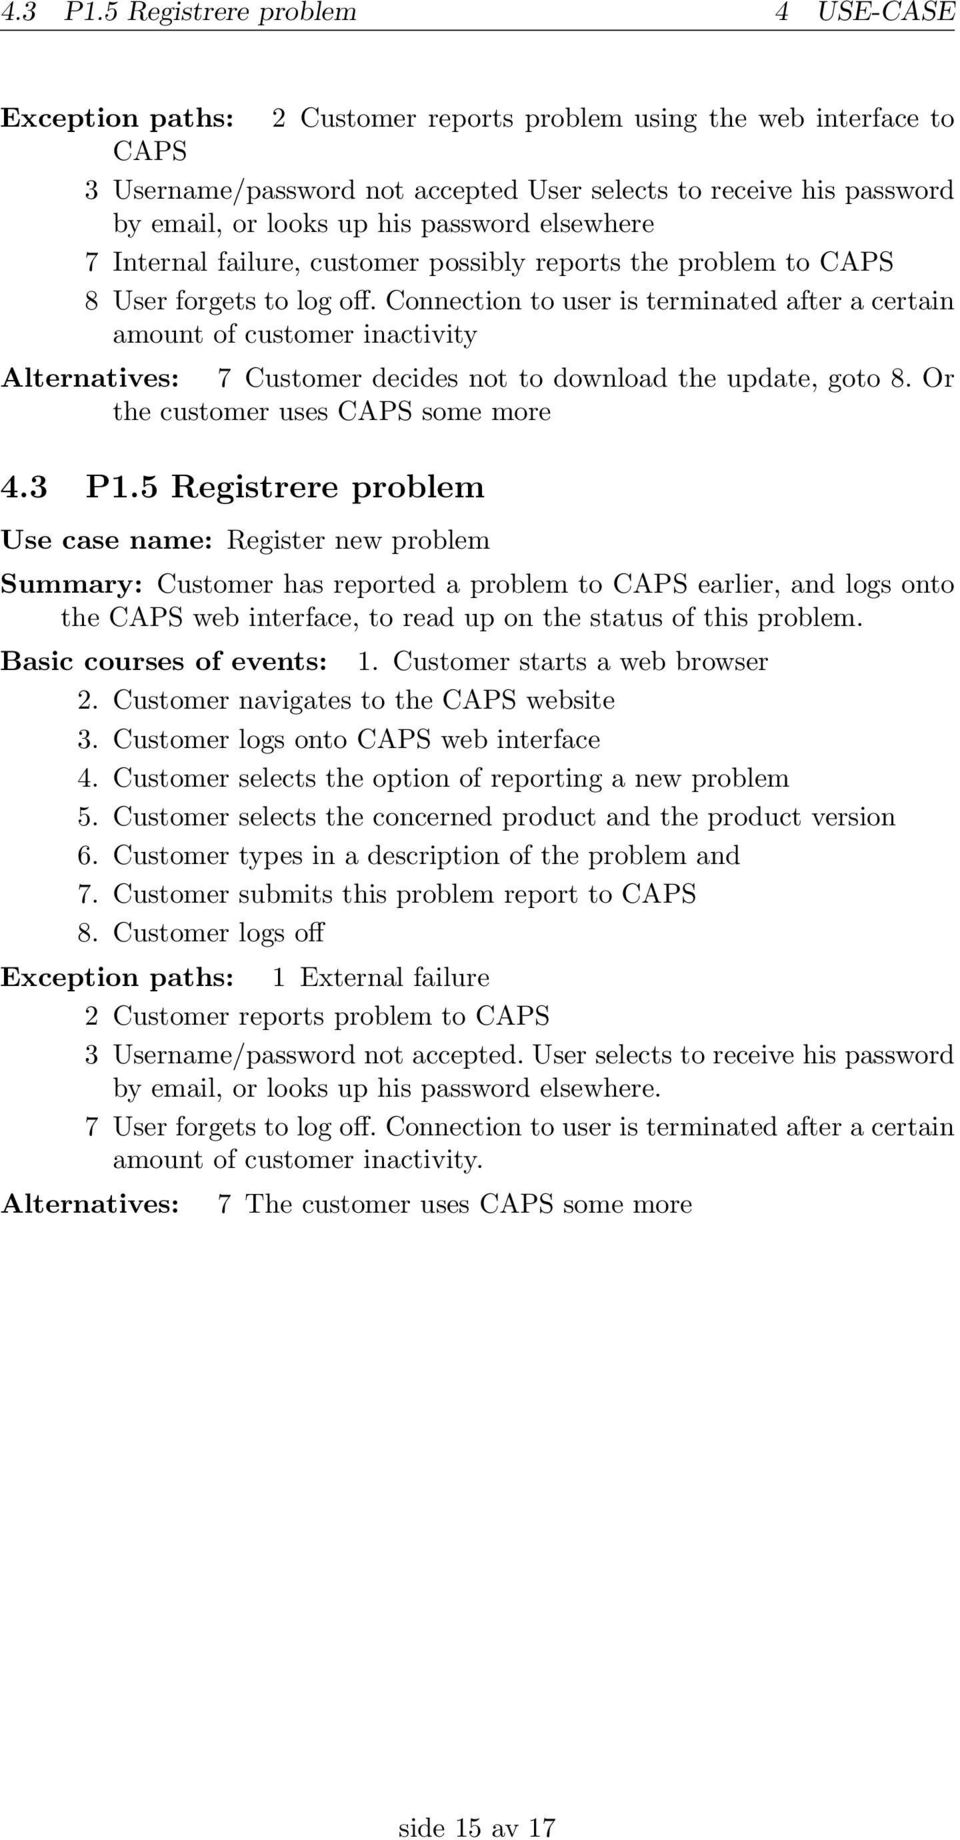 his password elsewhere 7 Internal failure, customer possibly reports the problem to CAPS 8 User forgets to log off.